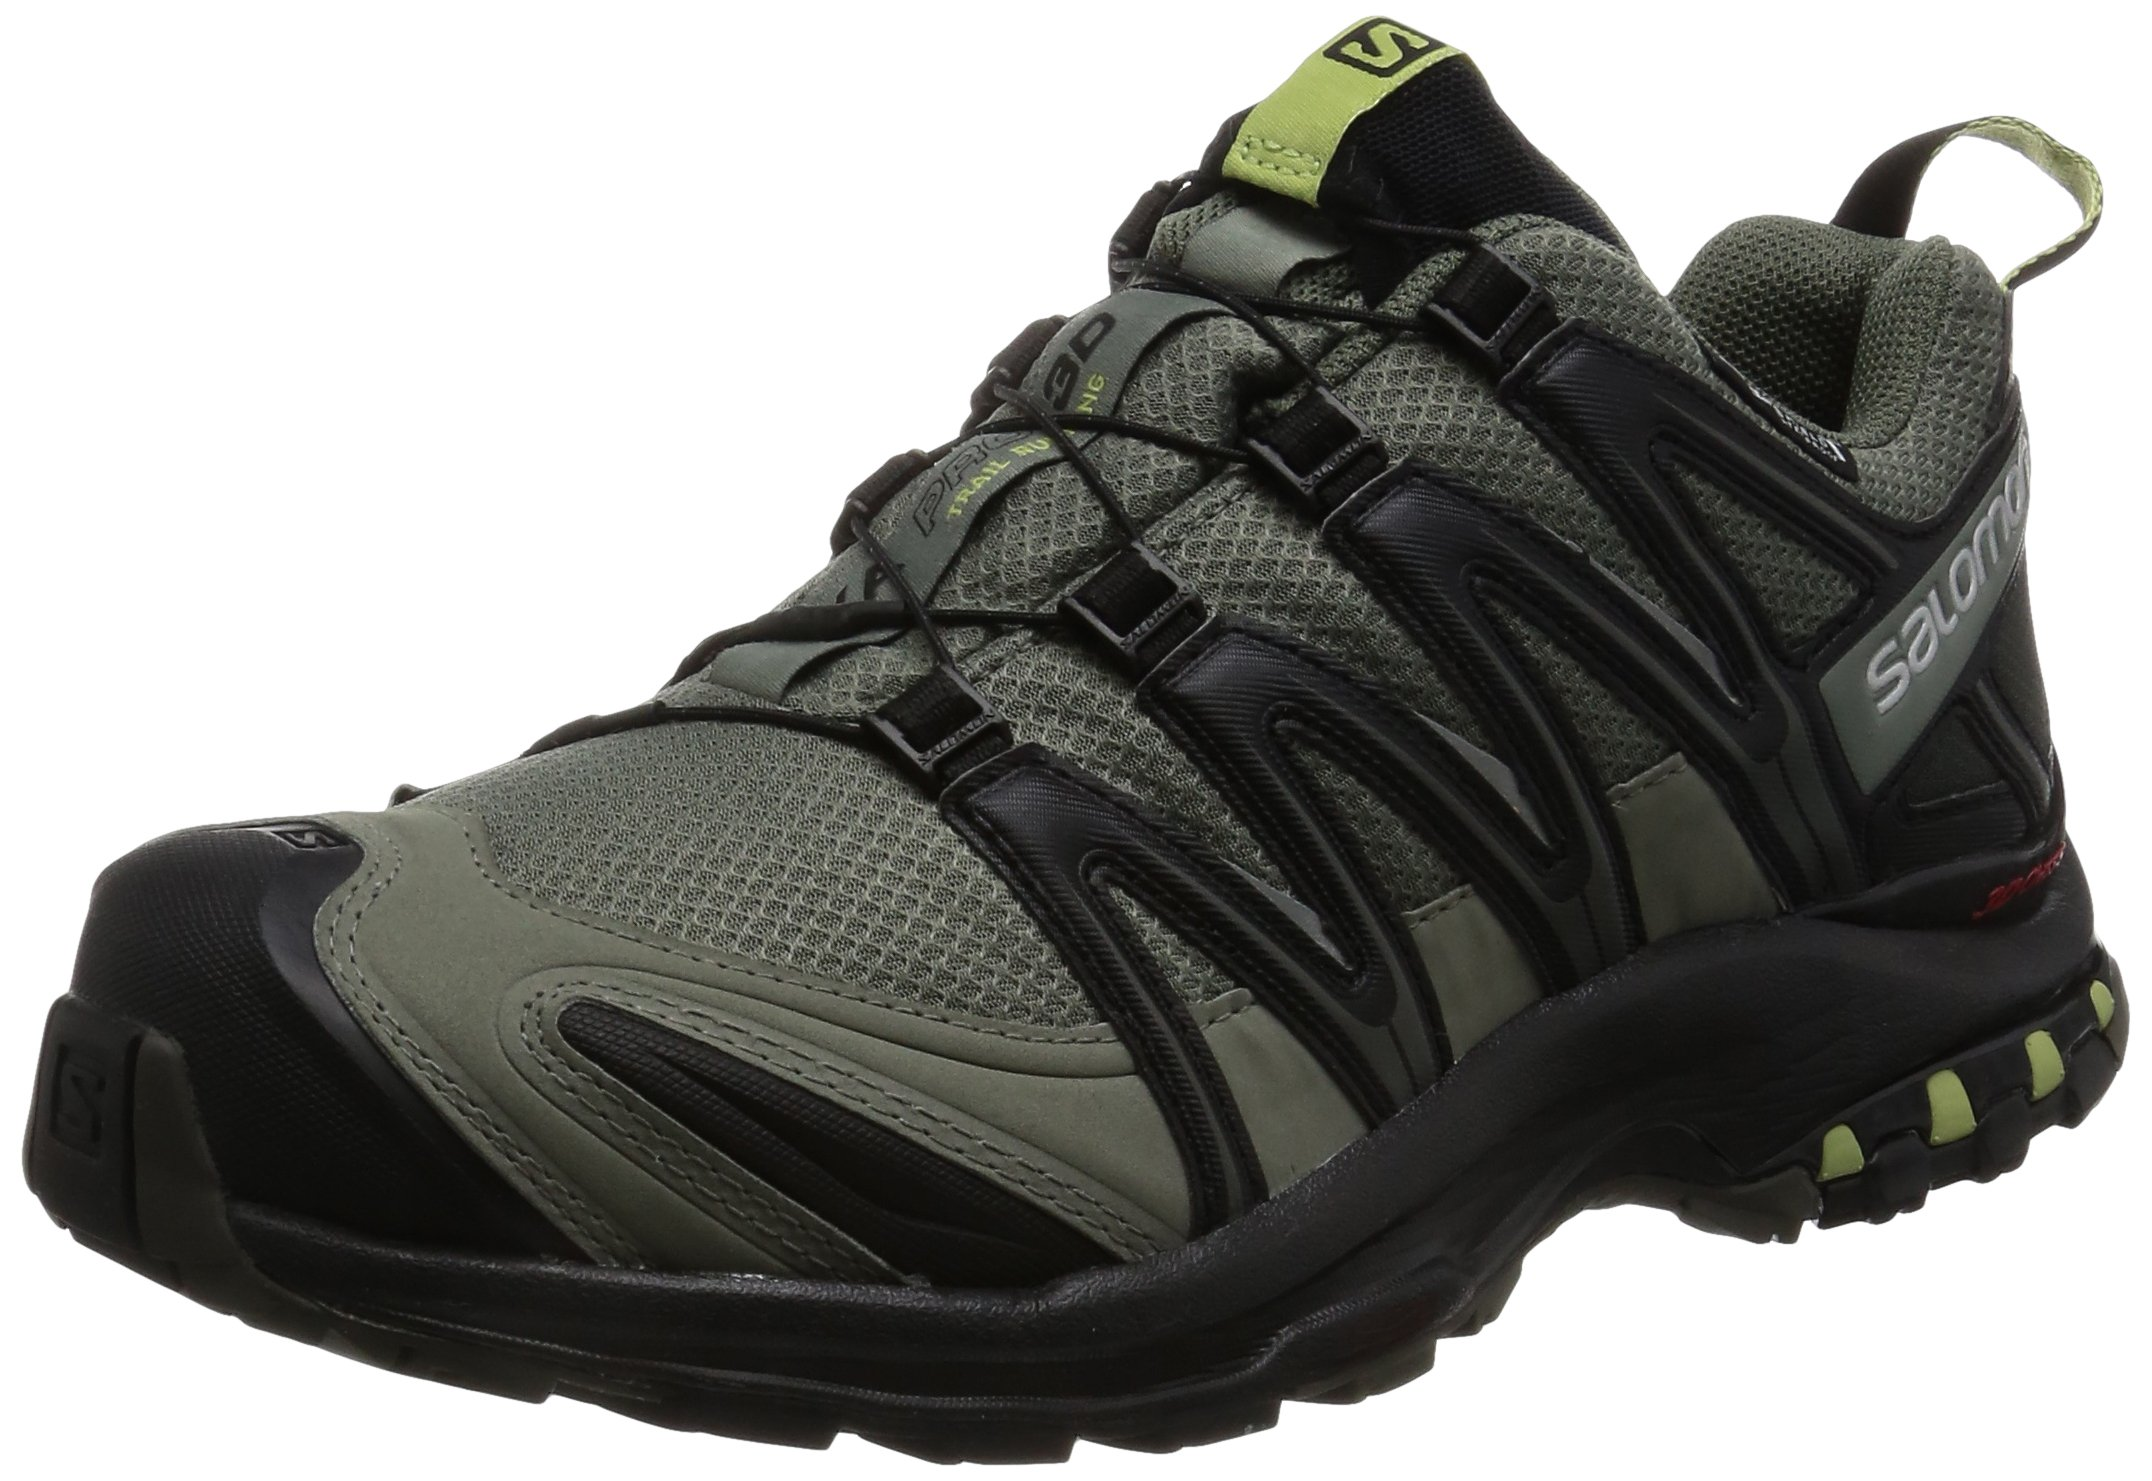 Salomon Men's XA Pro 3D CS Waterproof Trail-Runners, Castor Gray, 9 M US